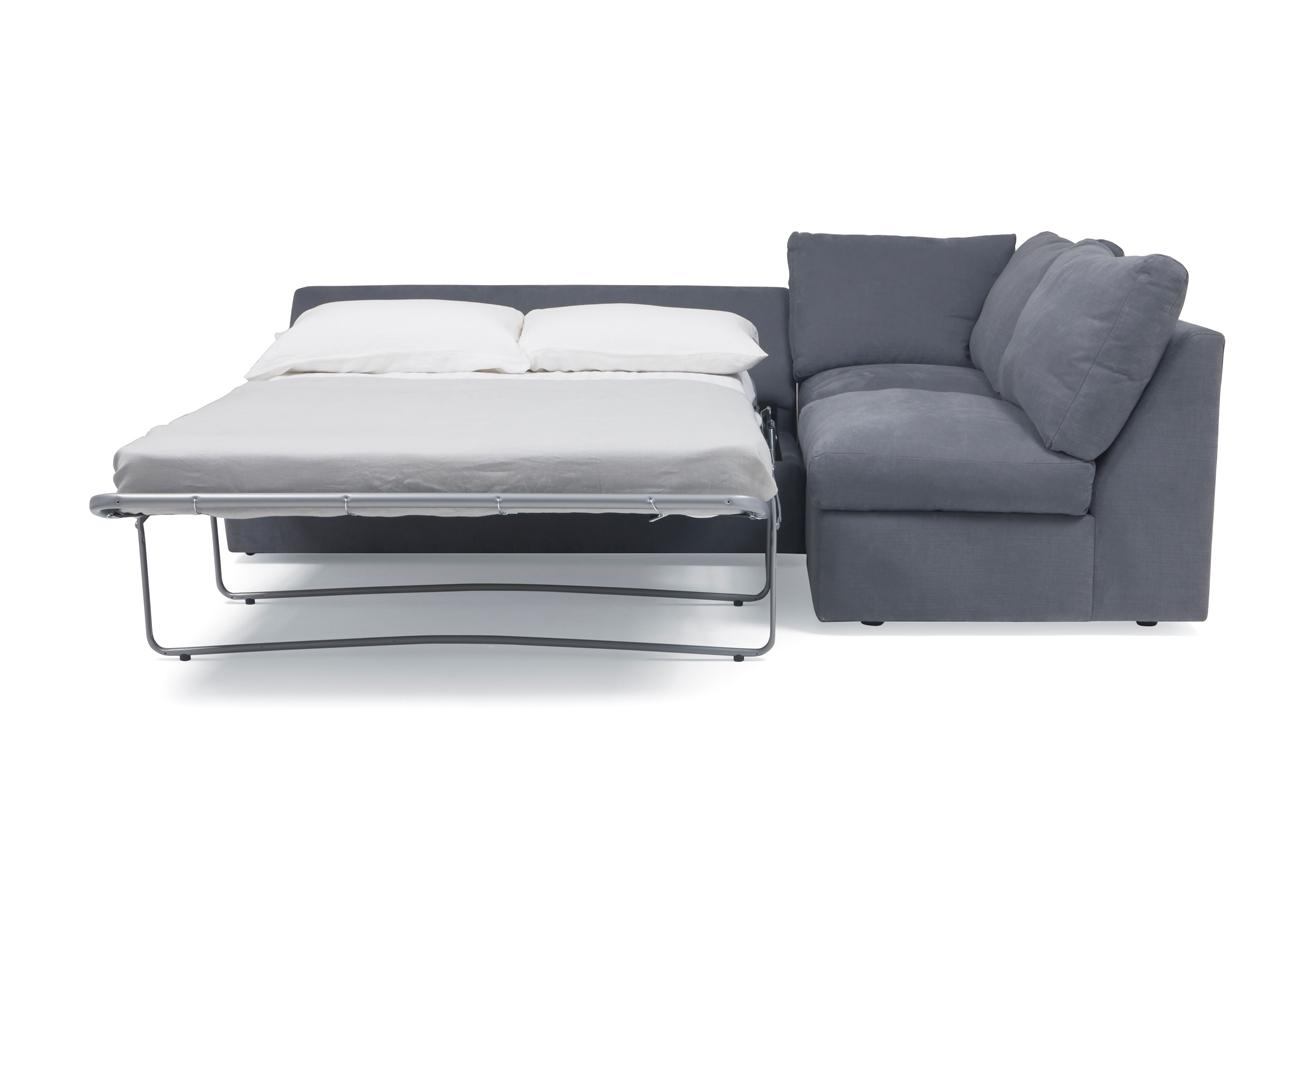 Chatnap Corner Sofa Bed | Modular Storage Sofa | Loaf | Loaf Pertaining To Corner Sofa Chairs (Image 1 of 20)